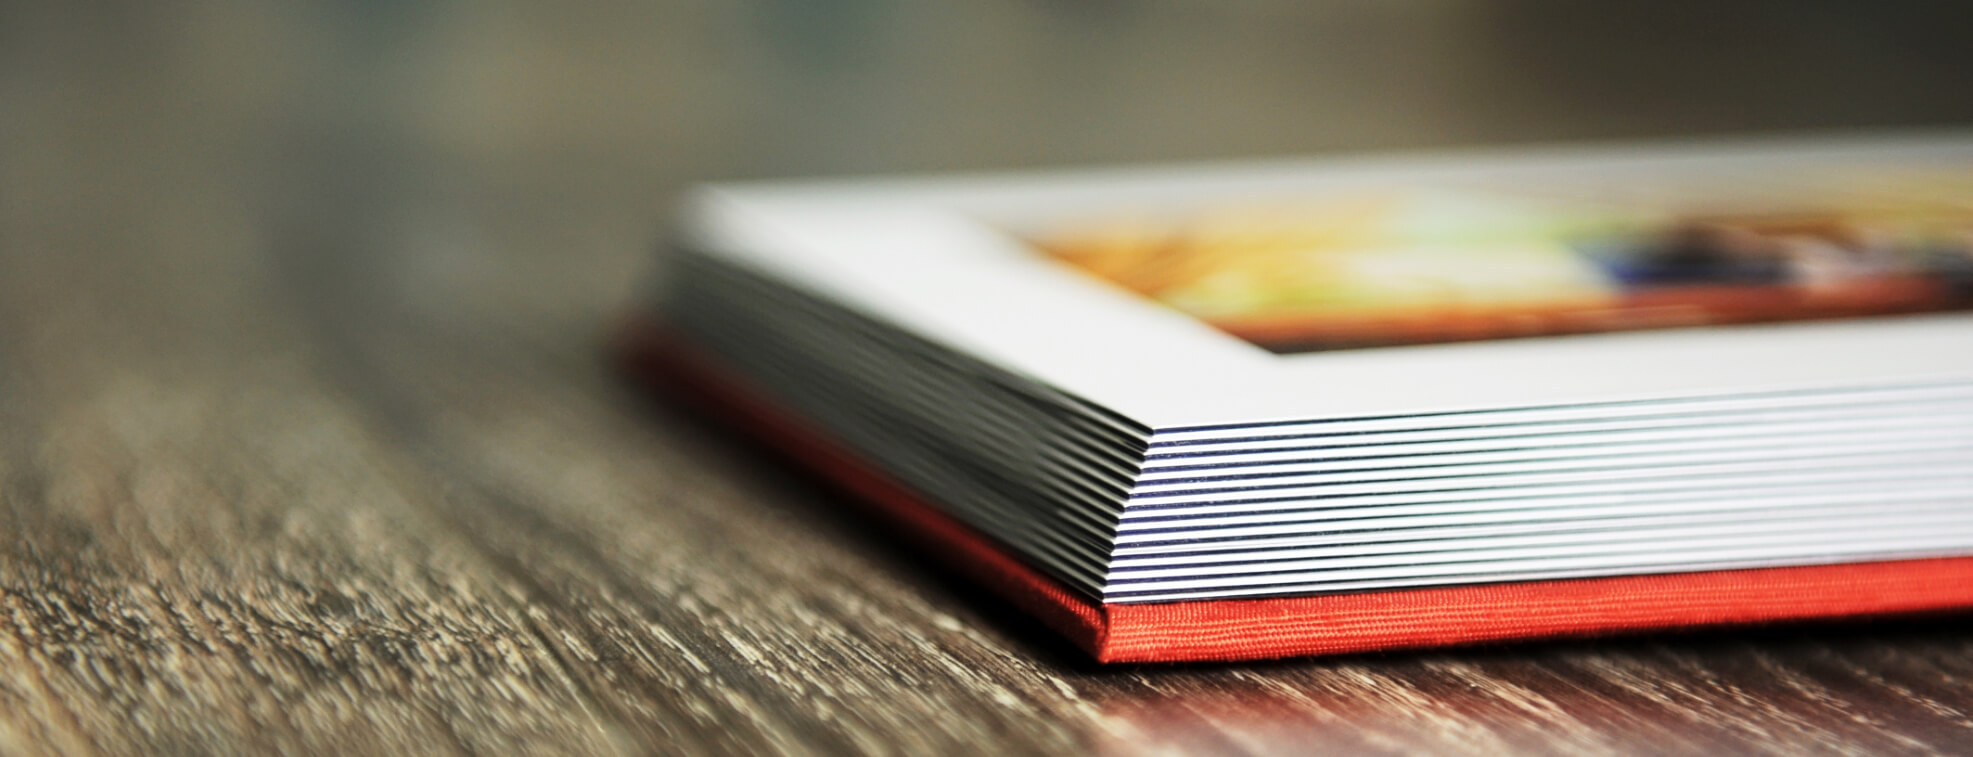 Close up of a photo book placed on a table